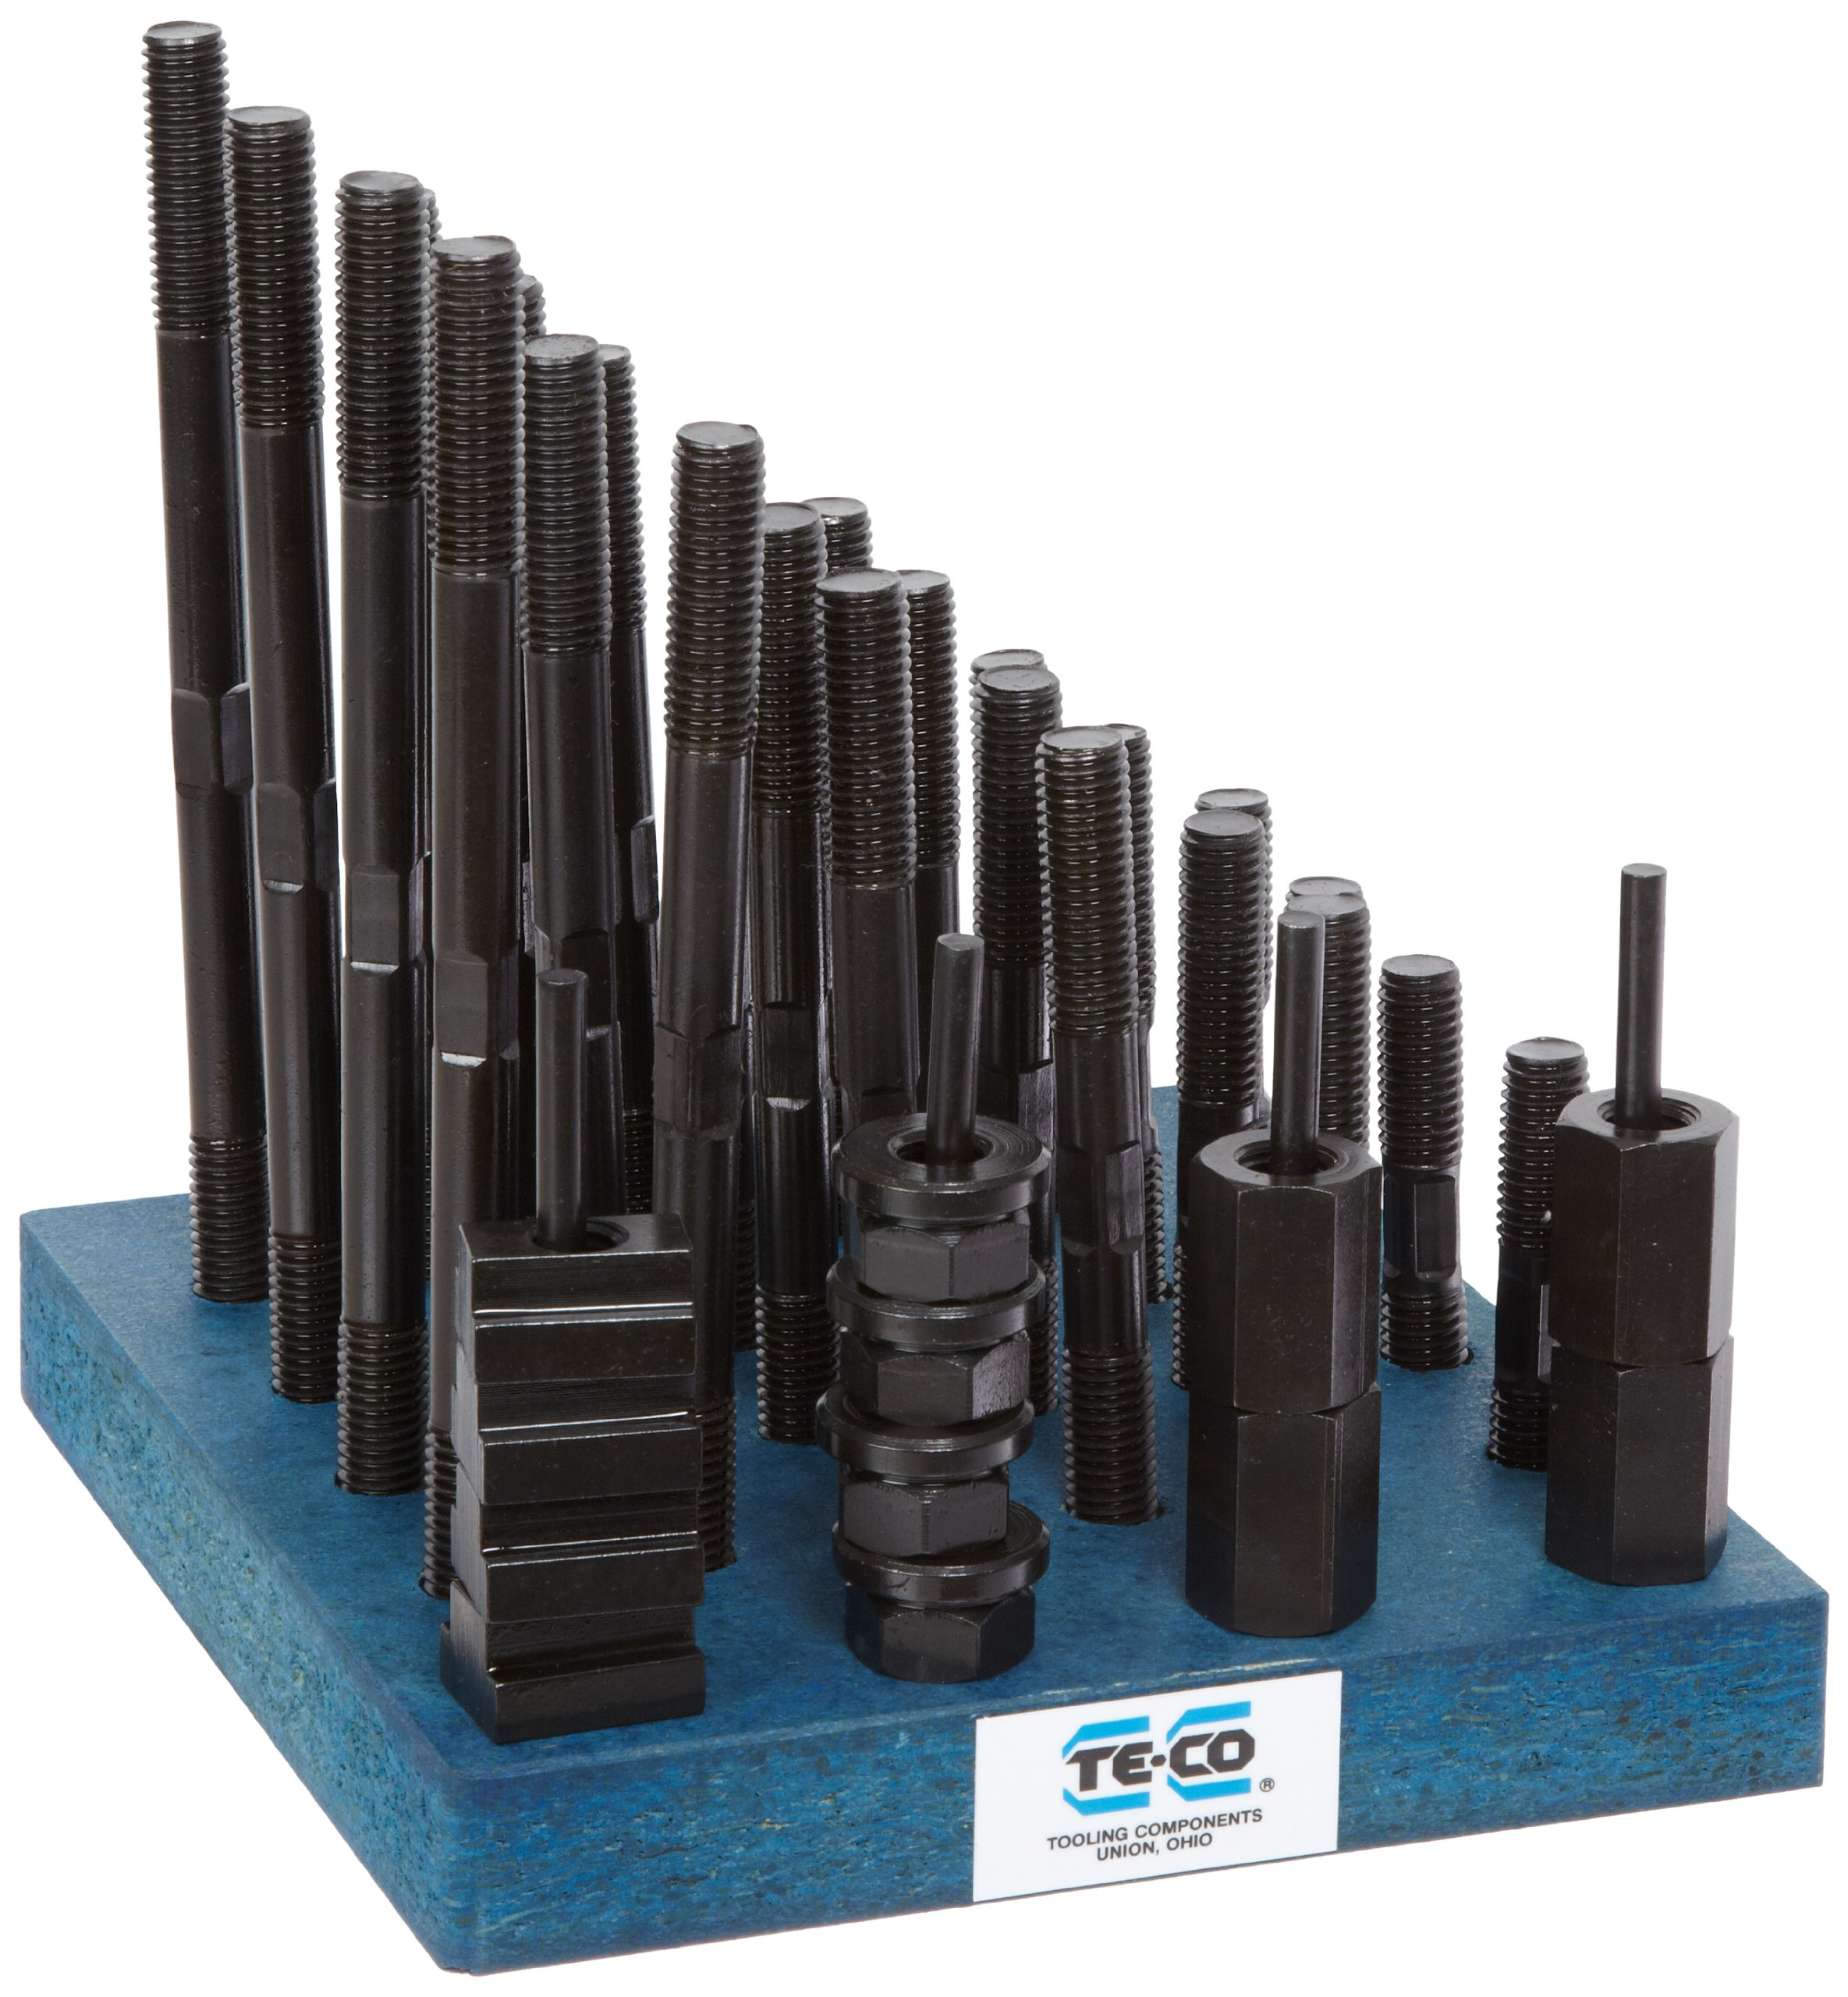 Te-Co 20605 38 Piece T-Nut and Stud Kit, 1/2''-13 Stud x 9/16'' Table T-Slot by Small Parts